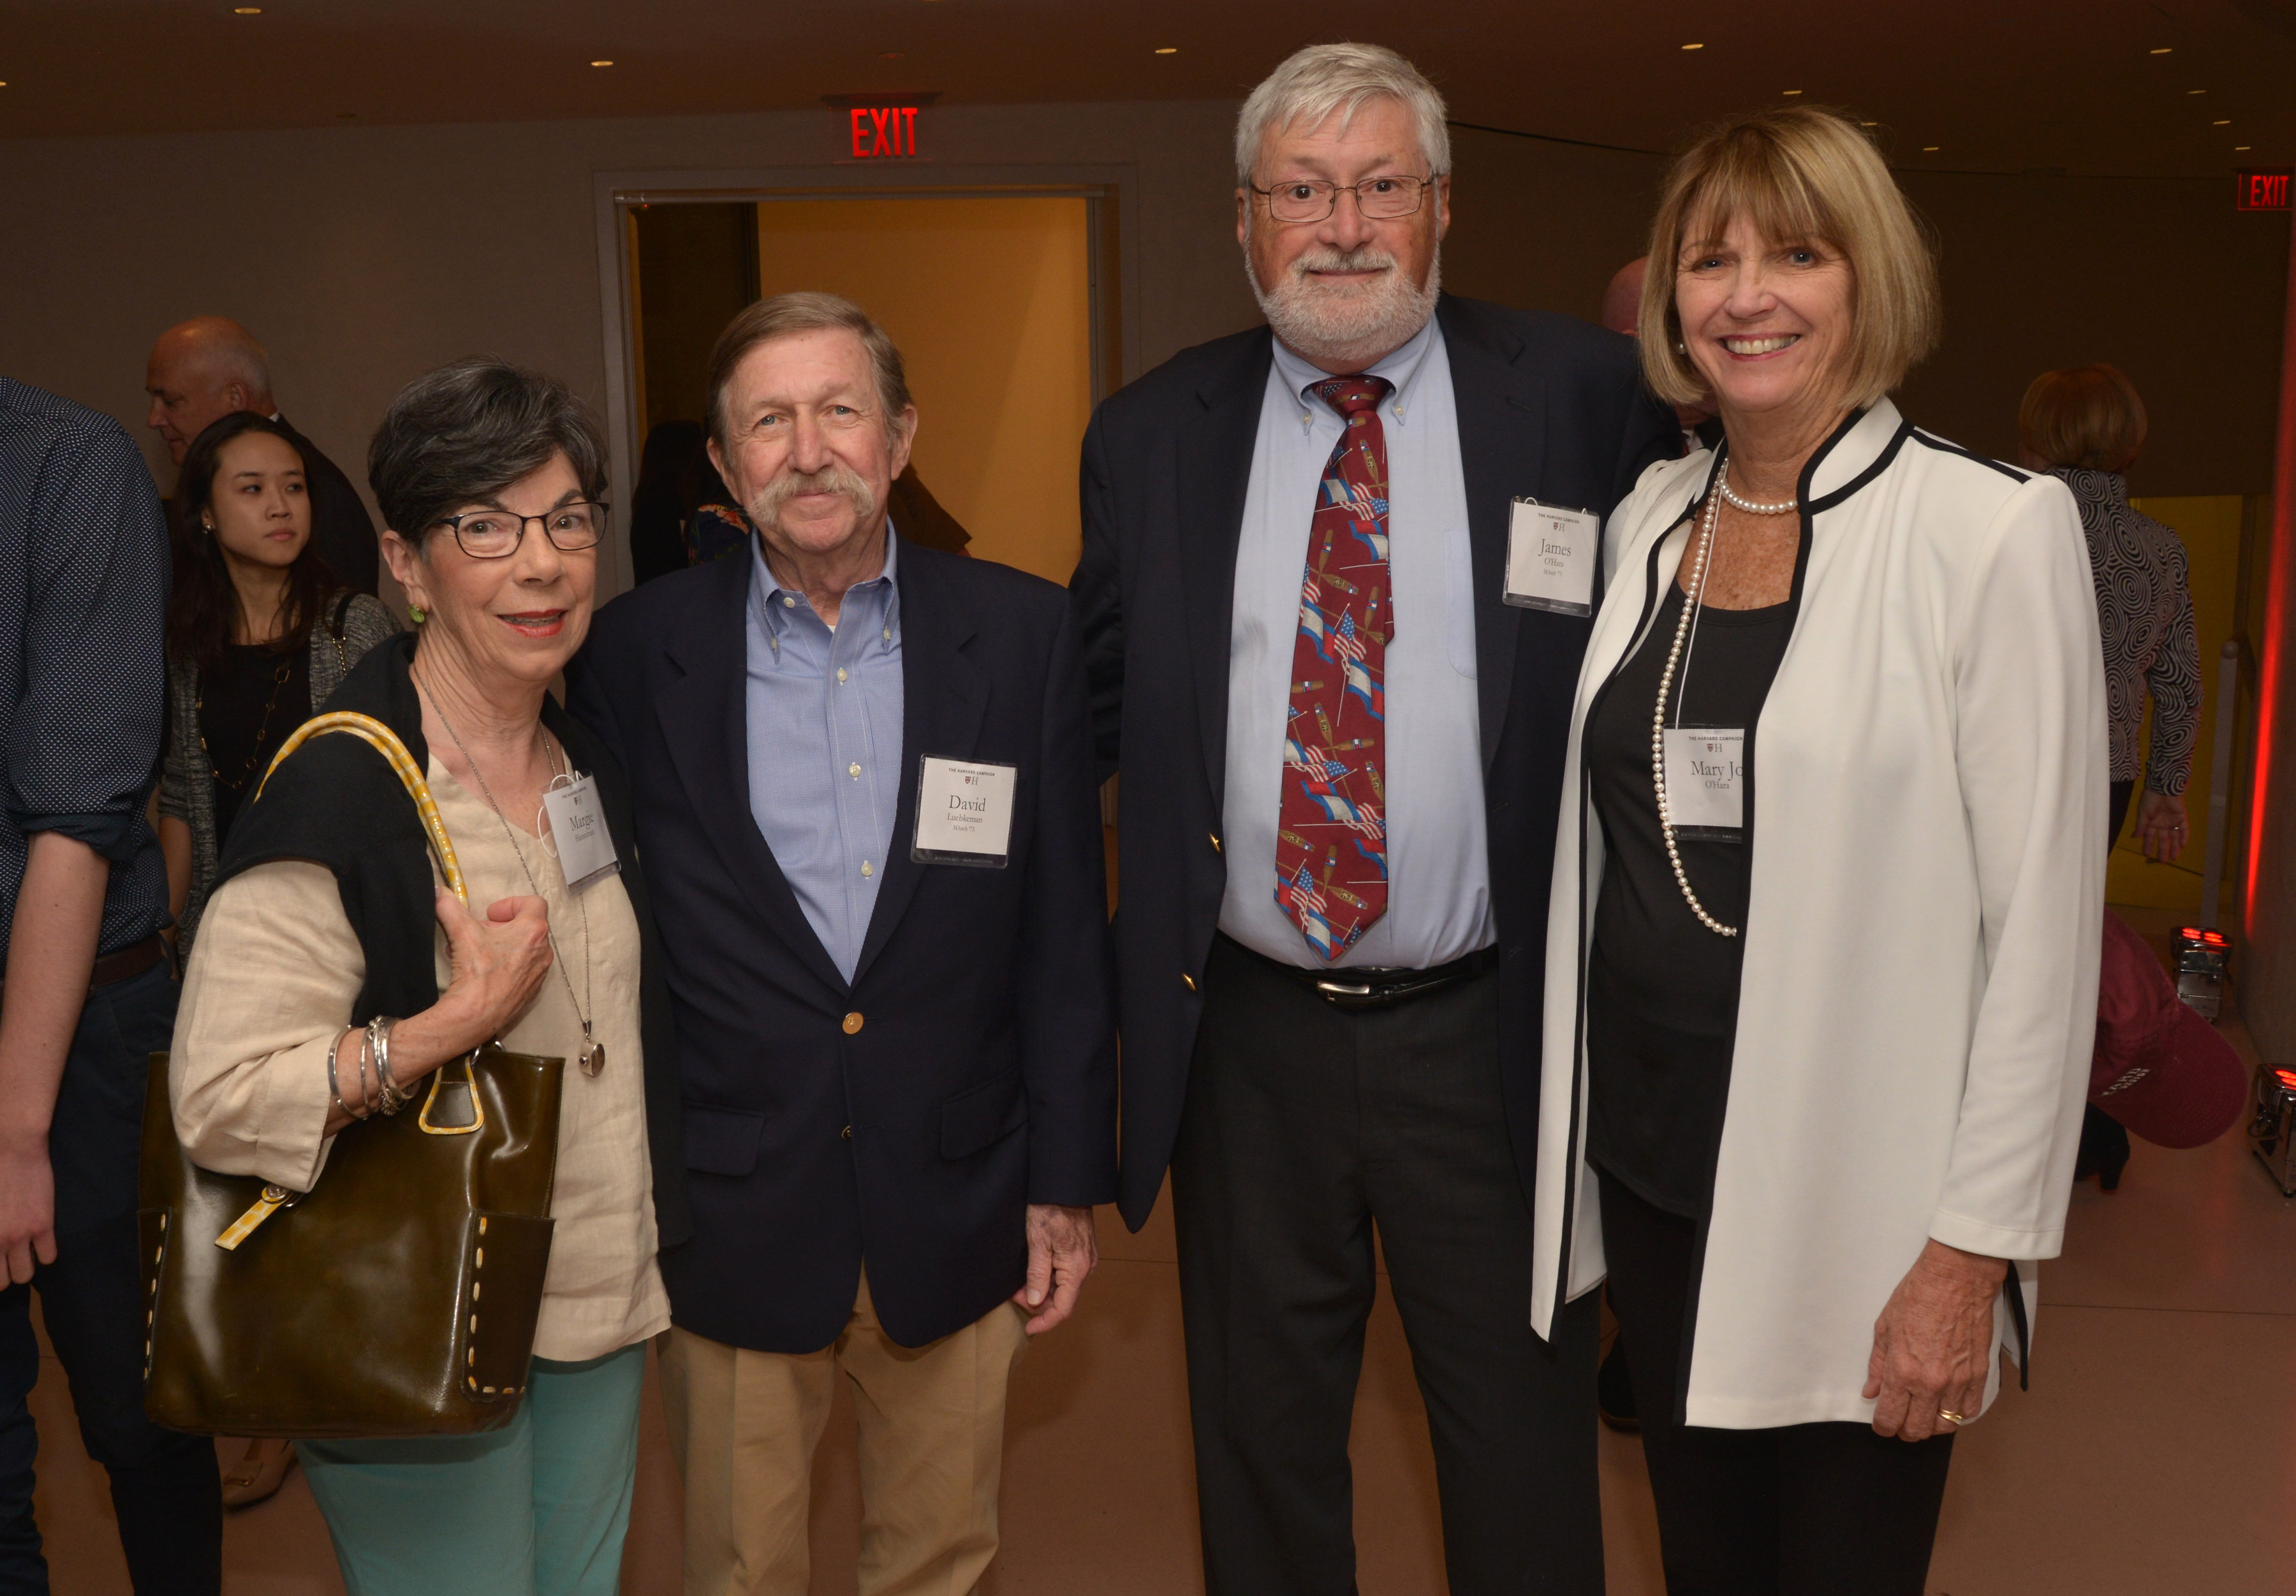 Margie Hanselman, David Luebkeman MArch '73, GSD Alumni Council member James O'Hara MArch '73, and Mary Jo O'Hara.